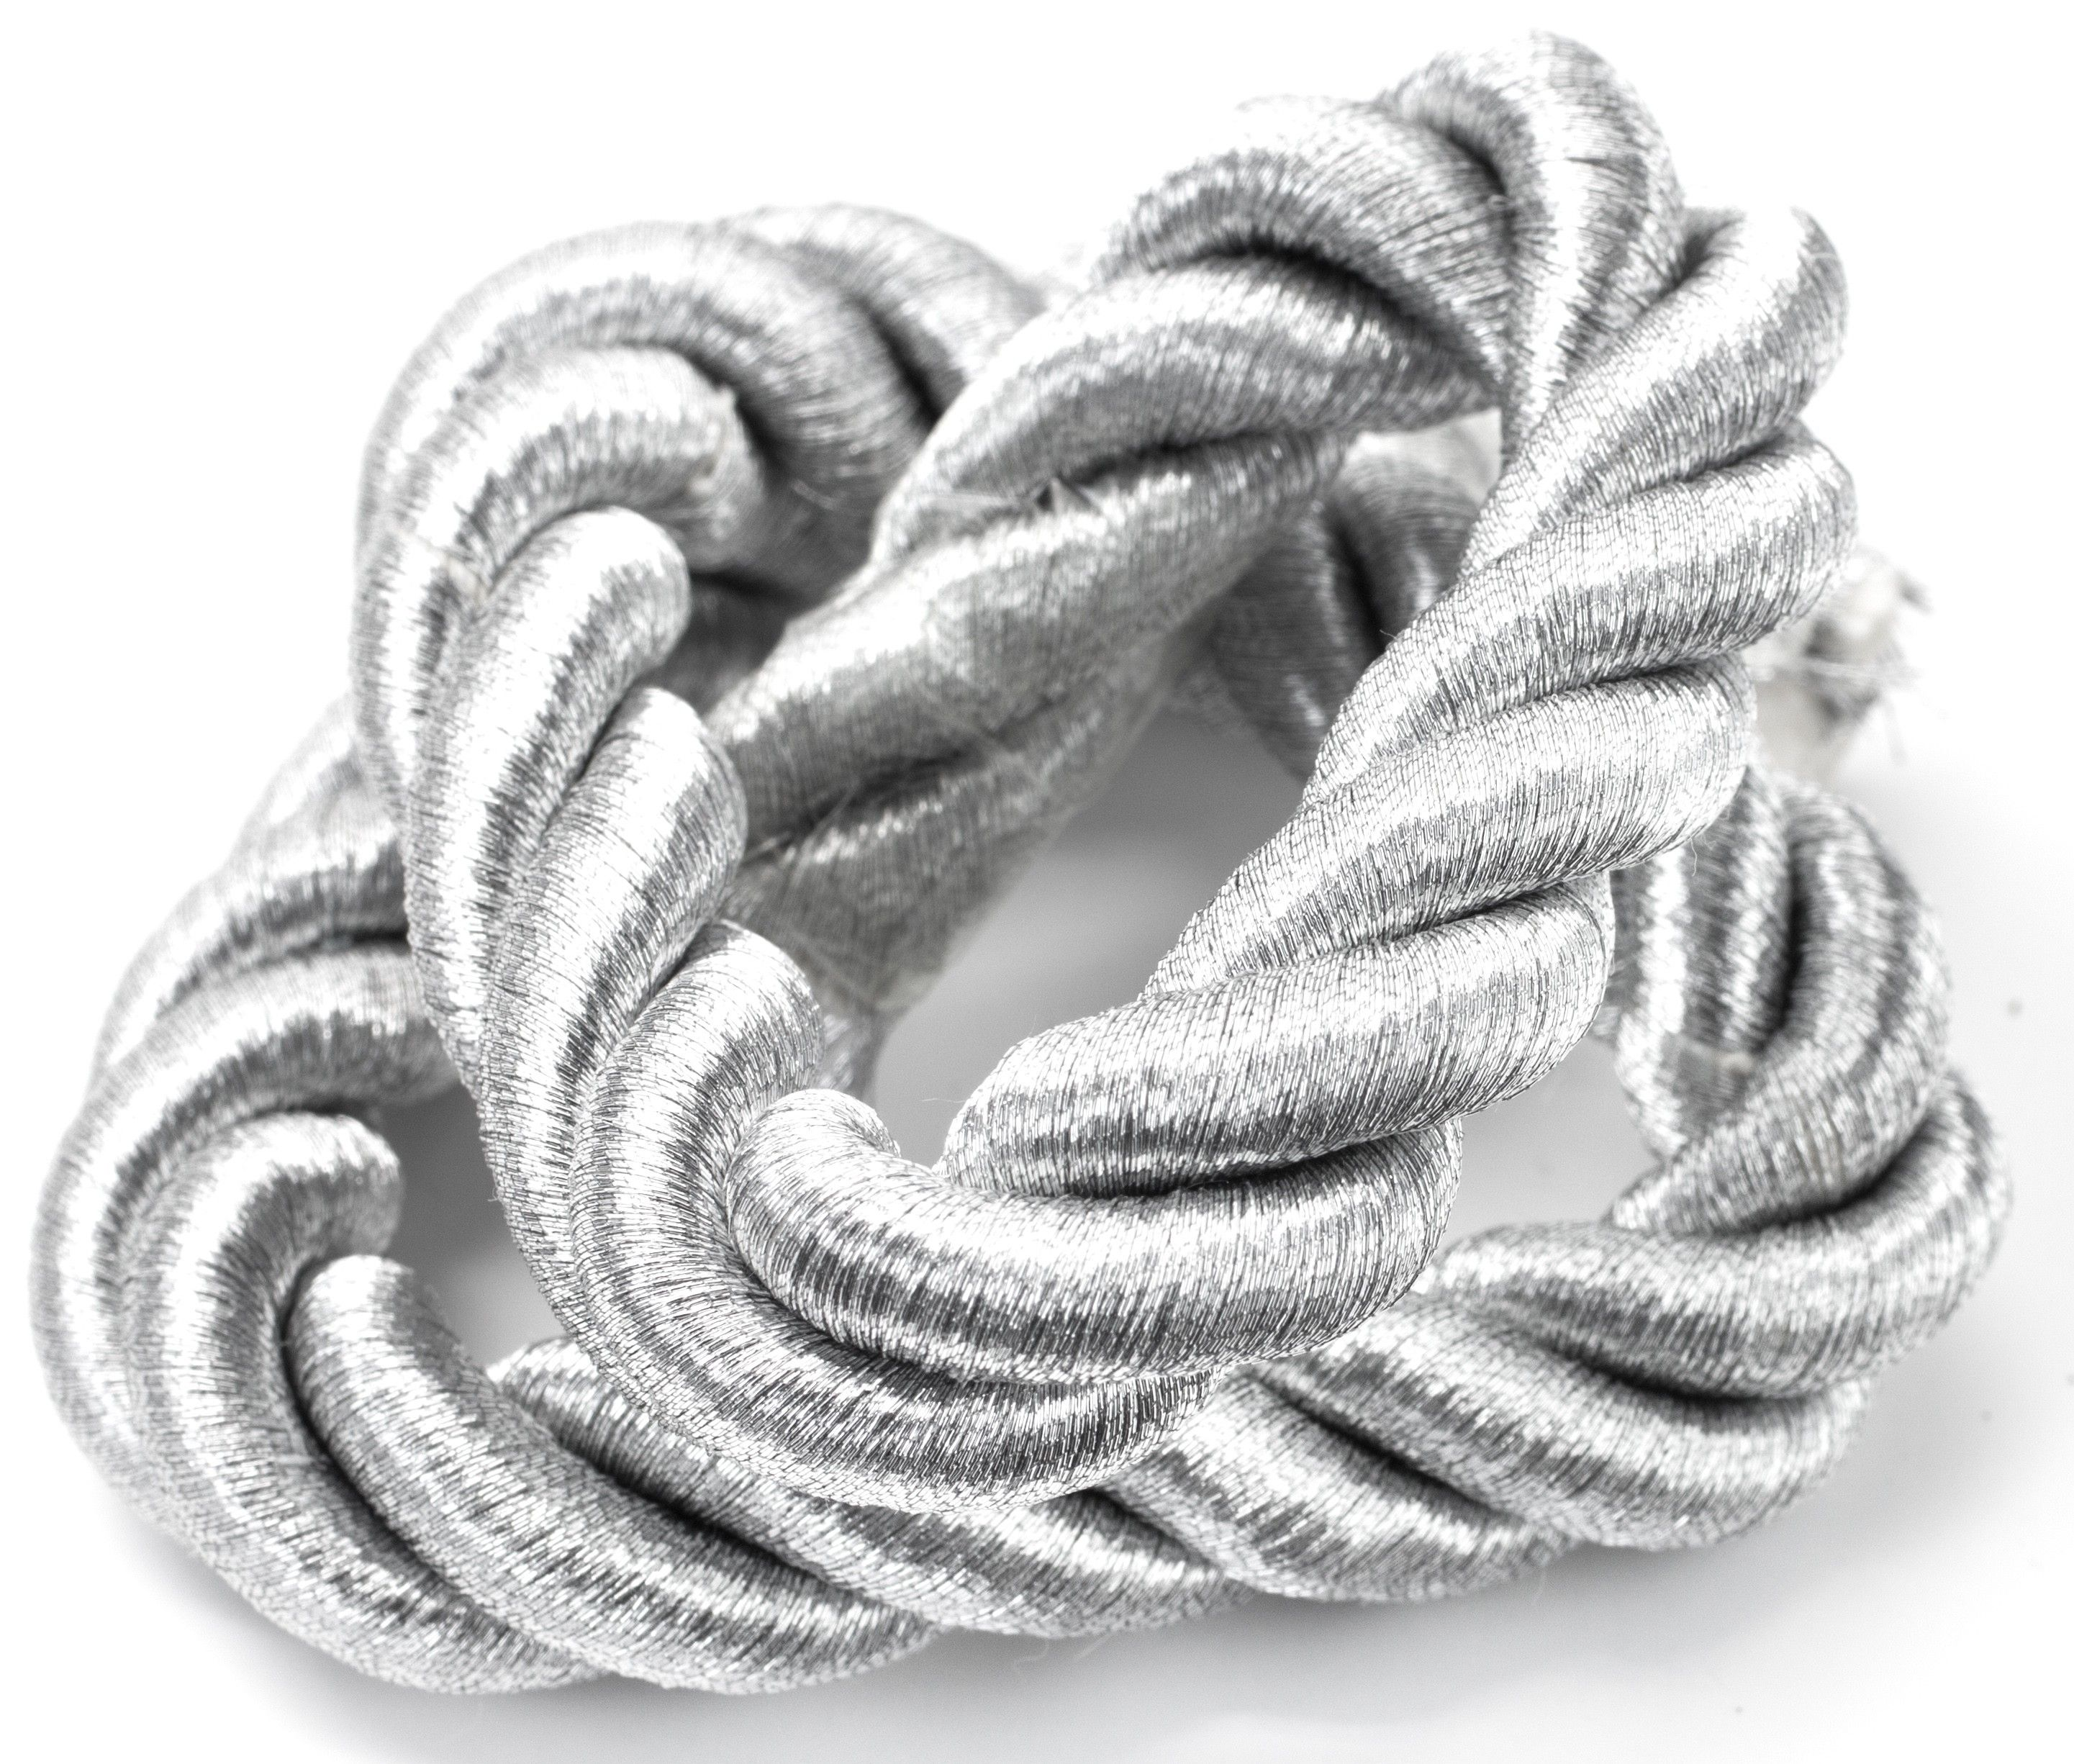 Nylon Silver Rope, 15in/38cm - This chunky nylon rope is fantastic for adding a bold feature to nautical themed bracelets and sailor's knot designs. Nylon rope is also great for a range of craft projects and adding special details to home decor. [$4.99]